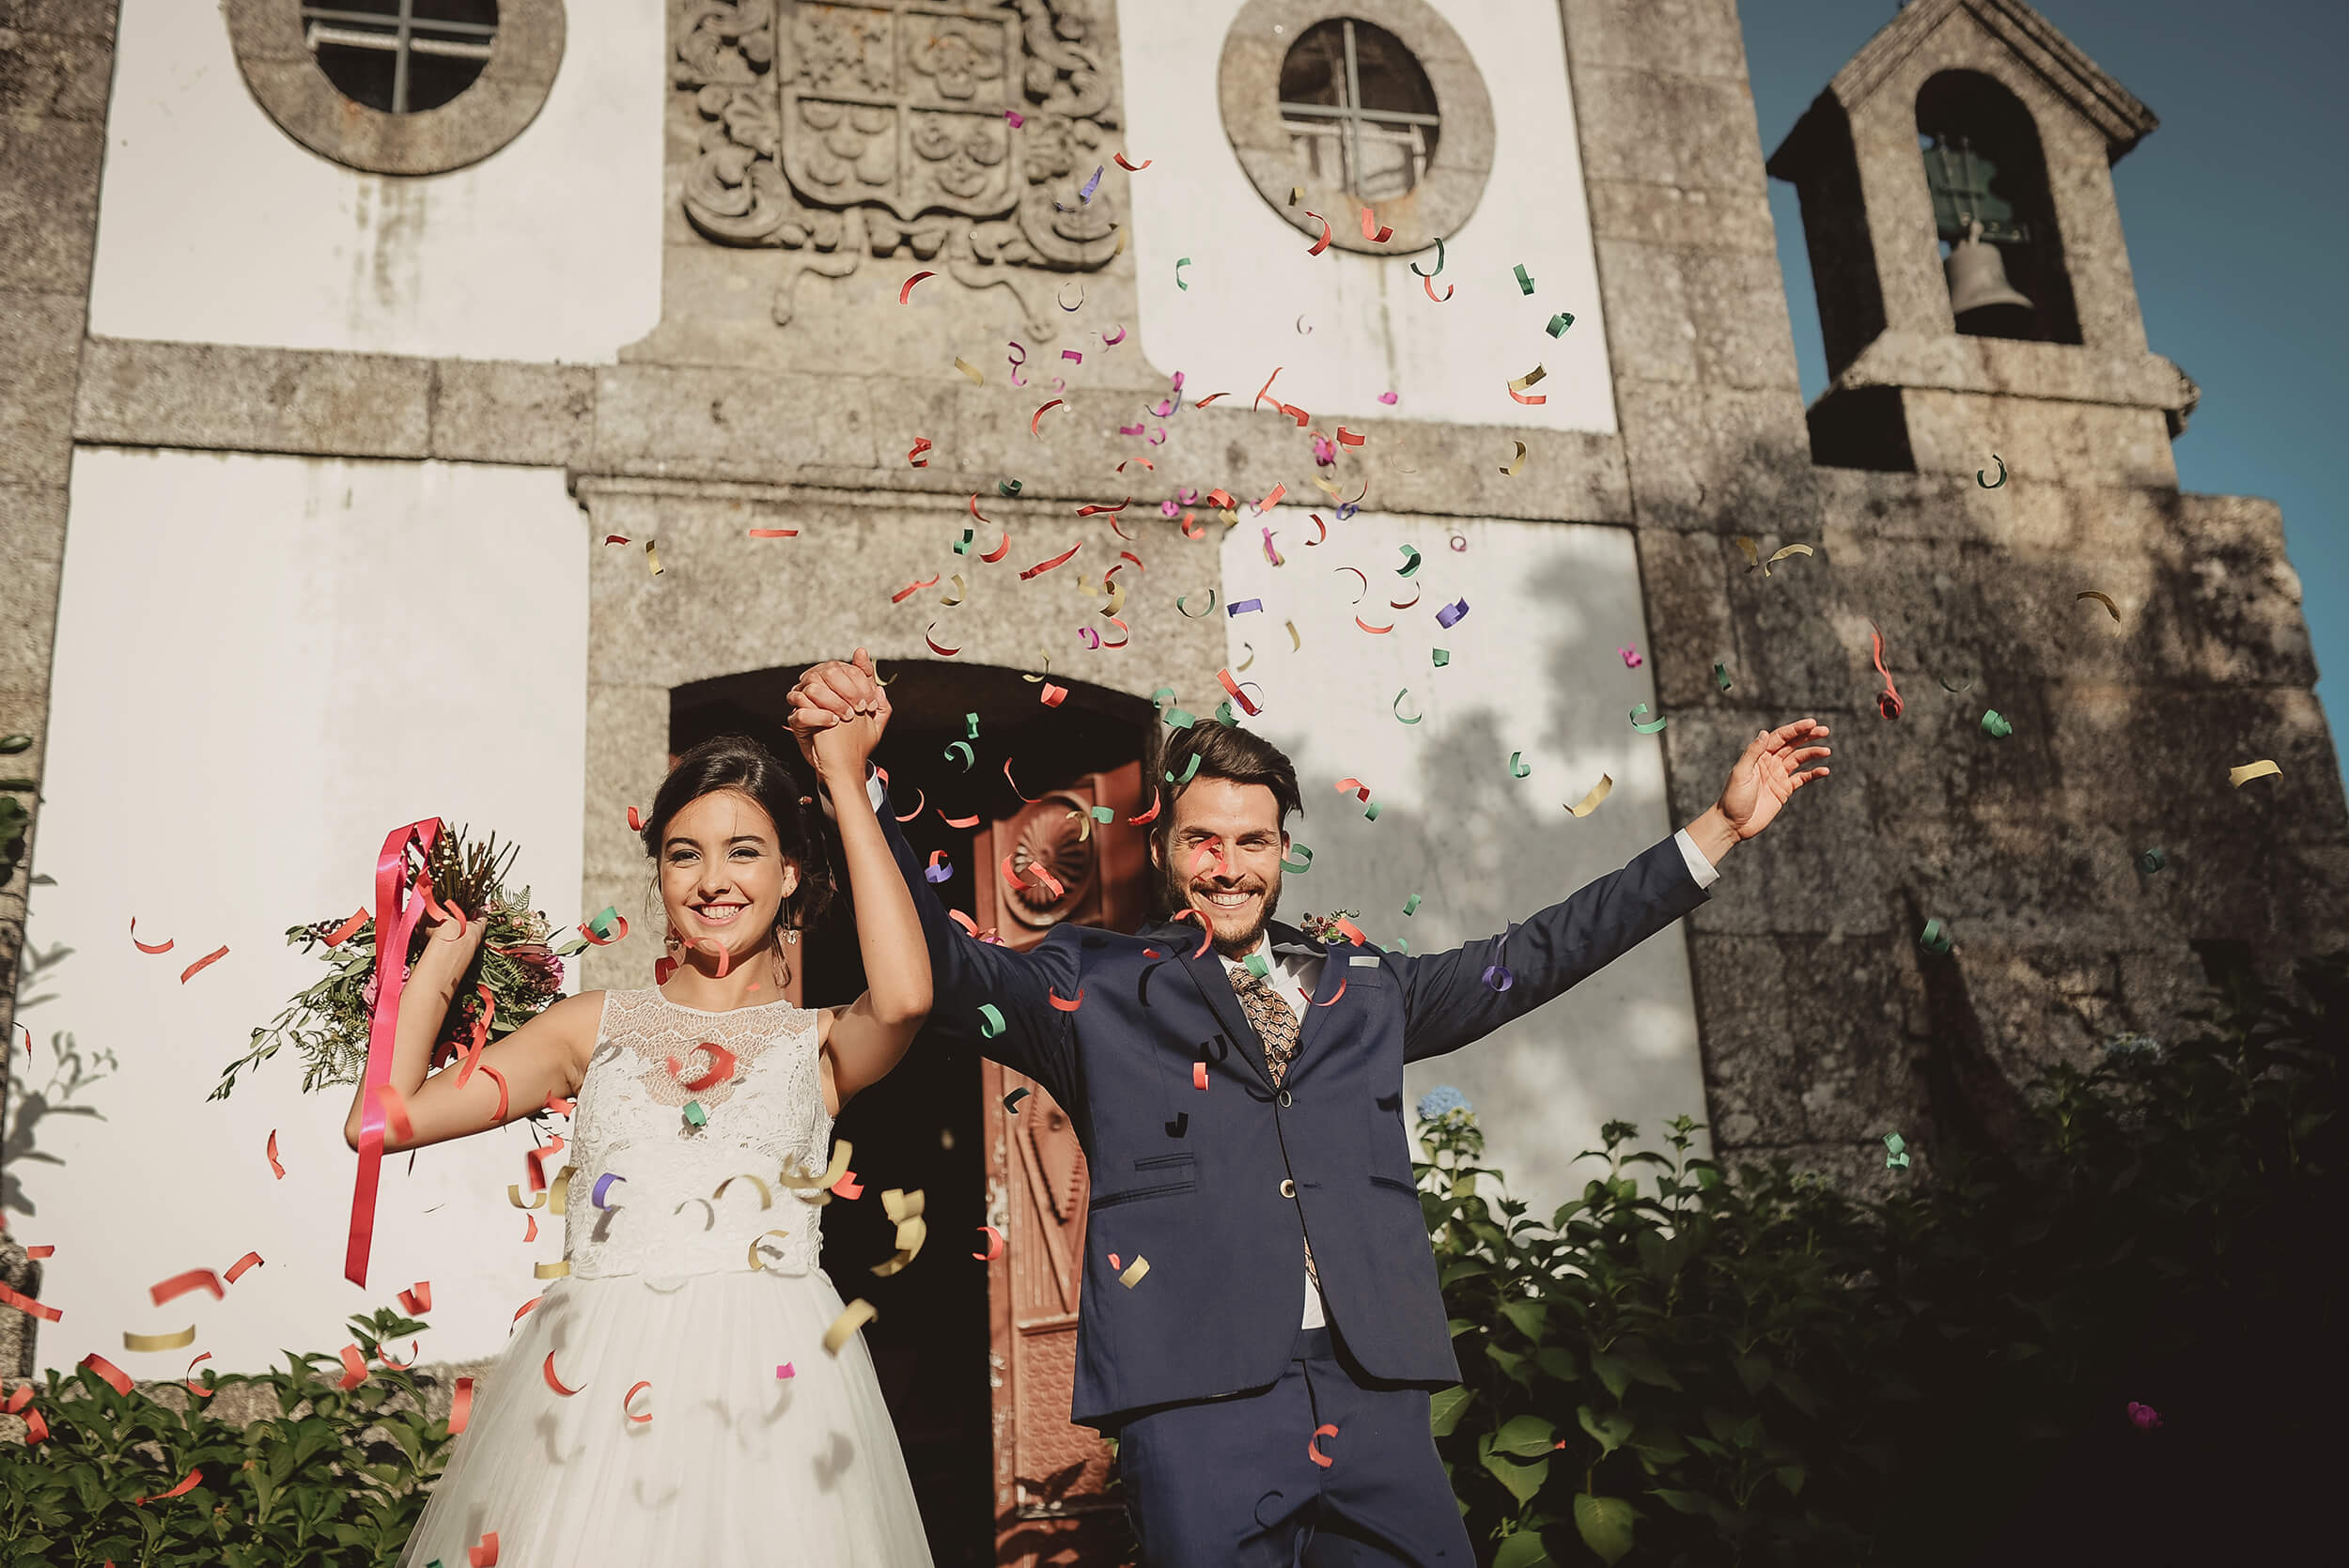 roma-organizacao-eventos-editorial-casamento-colorful-wedding-38